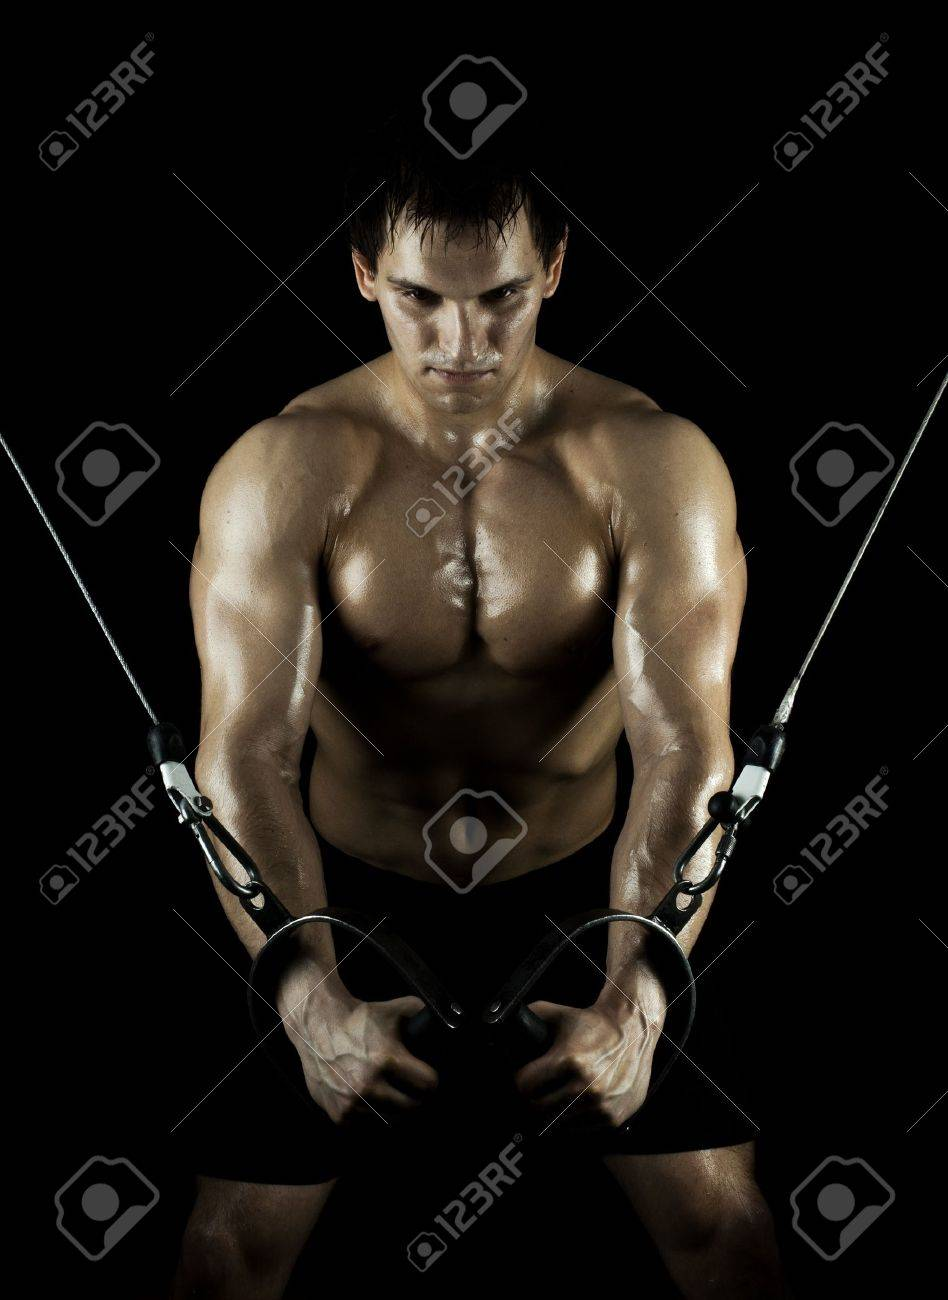 very power athletic guy ,  execute exercise on  on sport-apparatus, in  sport-hall, beauty glamour light Stock Photo - 11971764